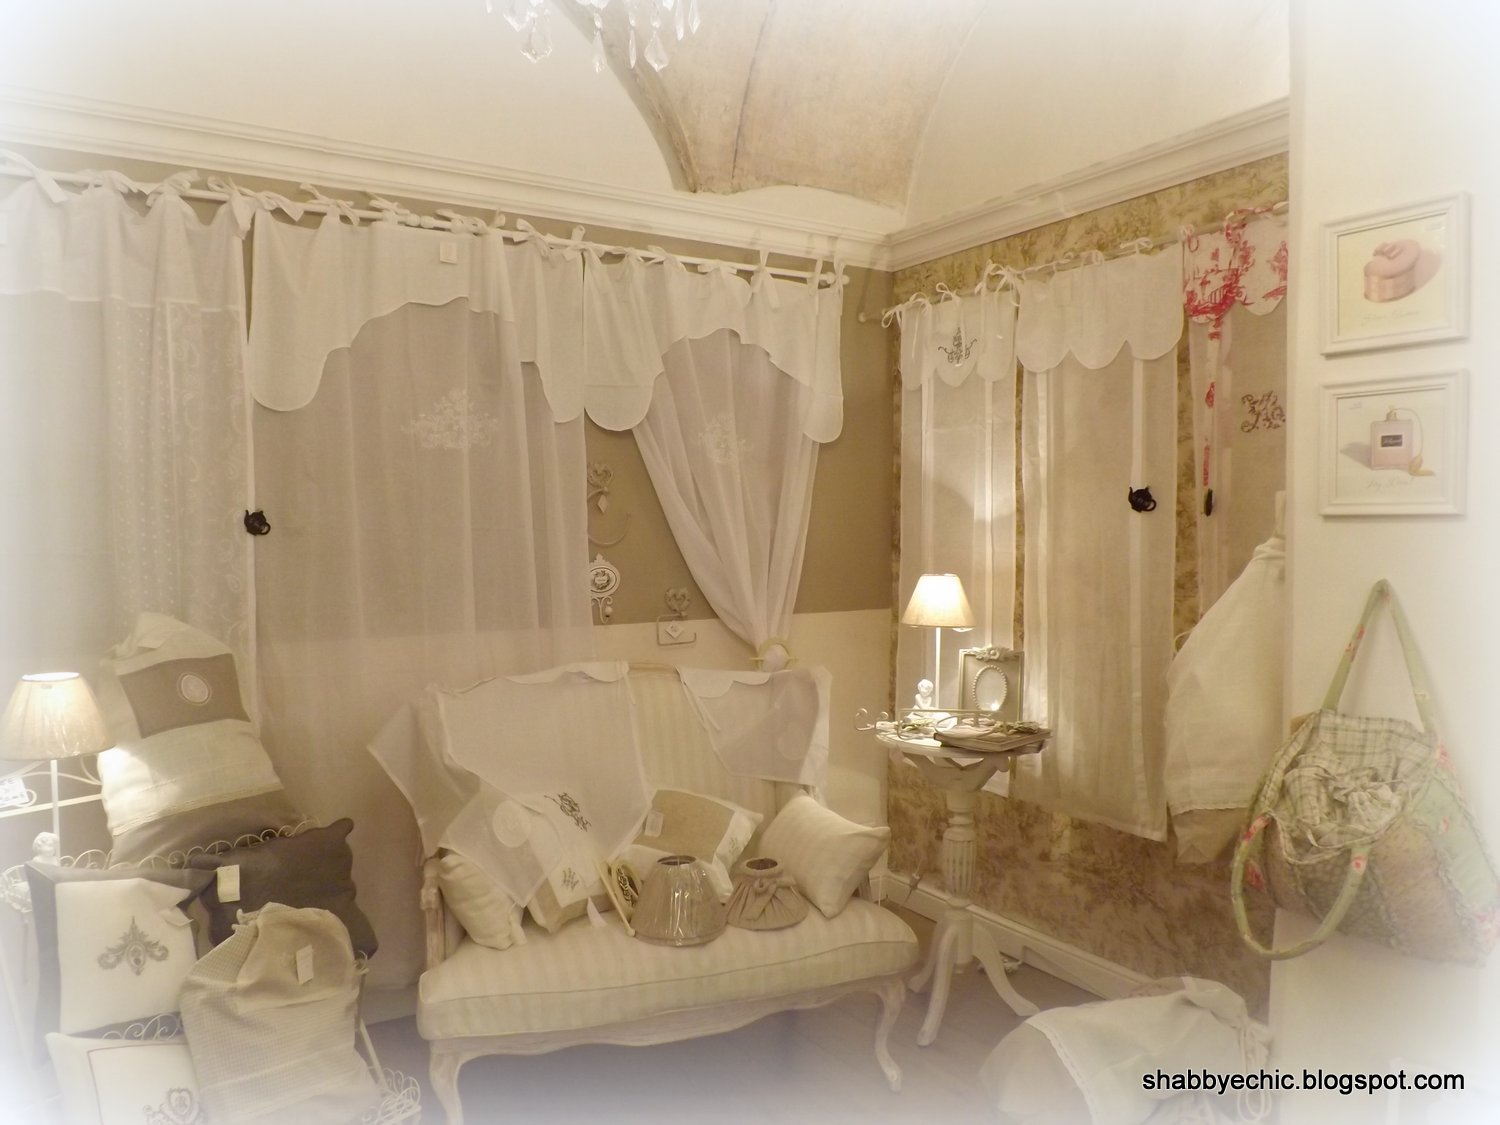 Shabby and charme un anno dopo - Shabby and charme ...